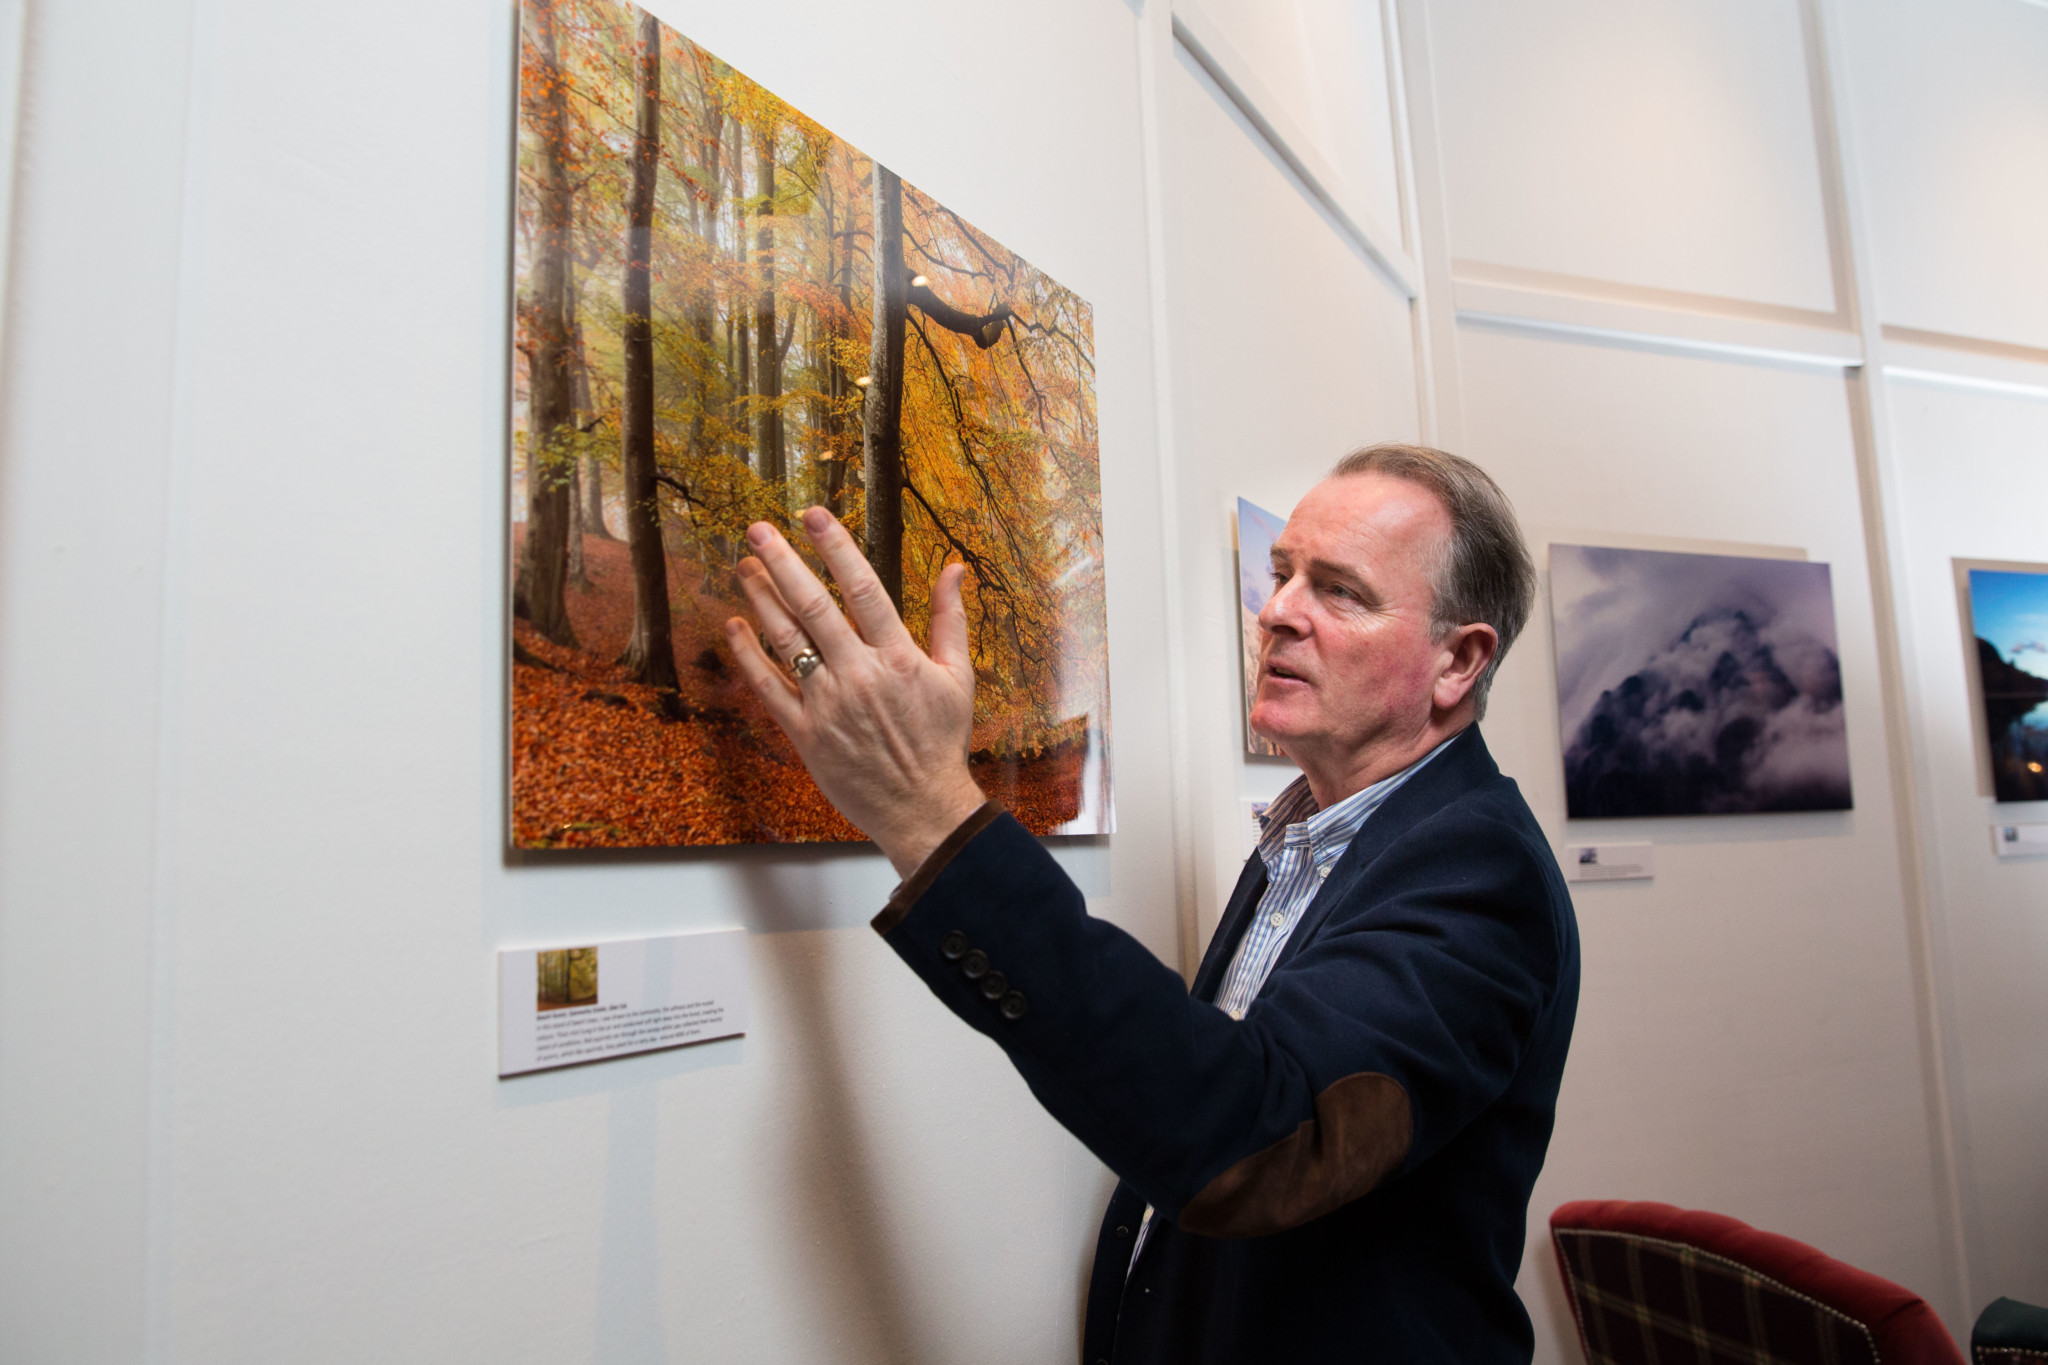 Colin Prior discusses Beech forest, Glen Esk at Cameron House